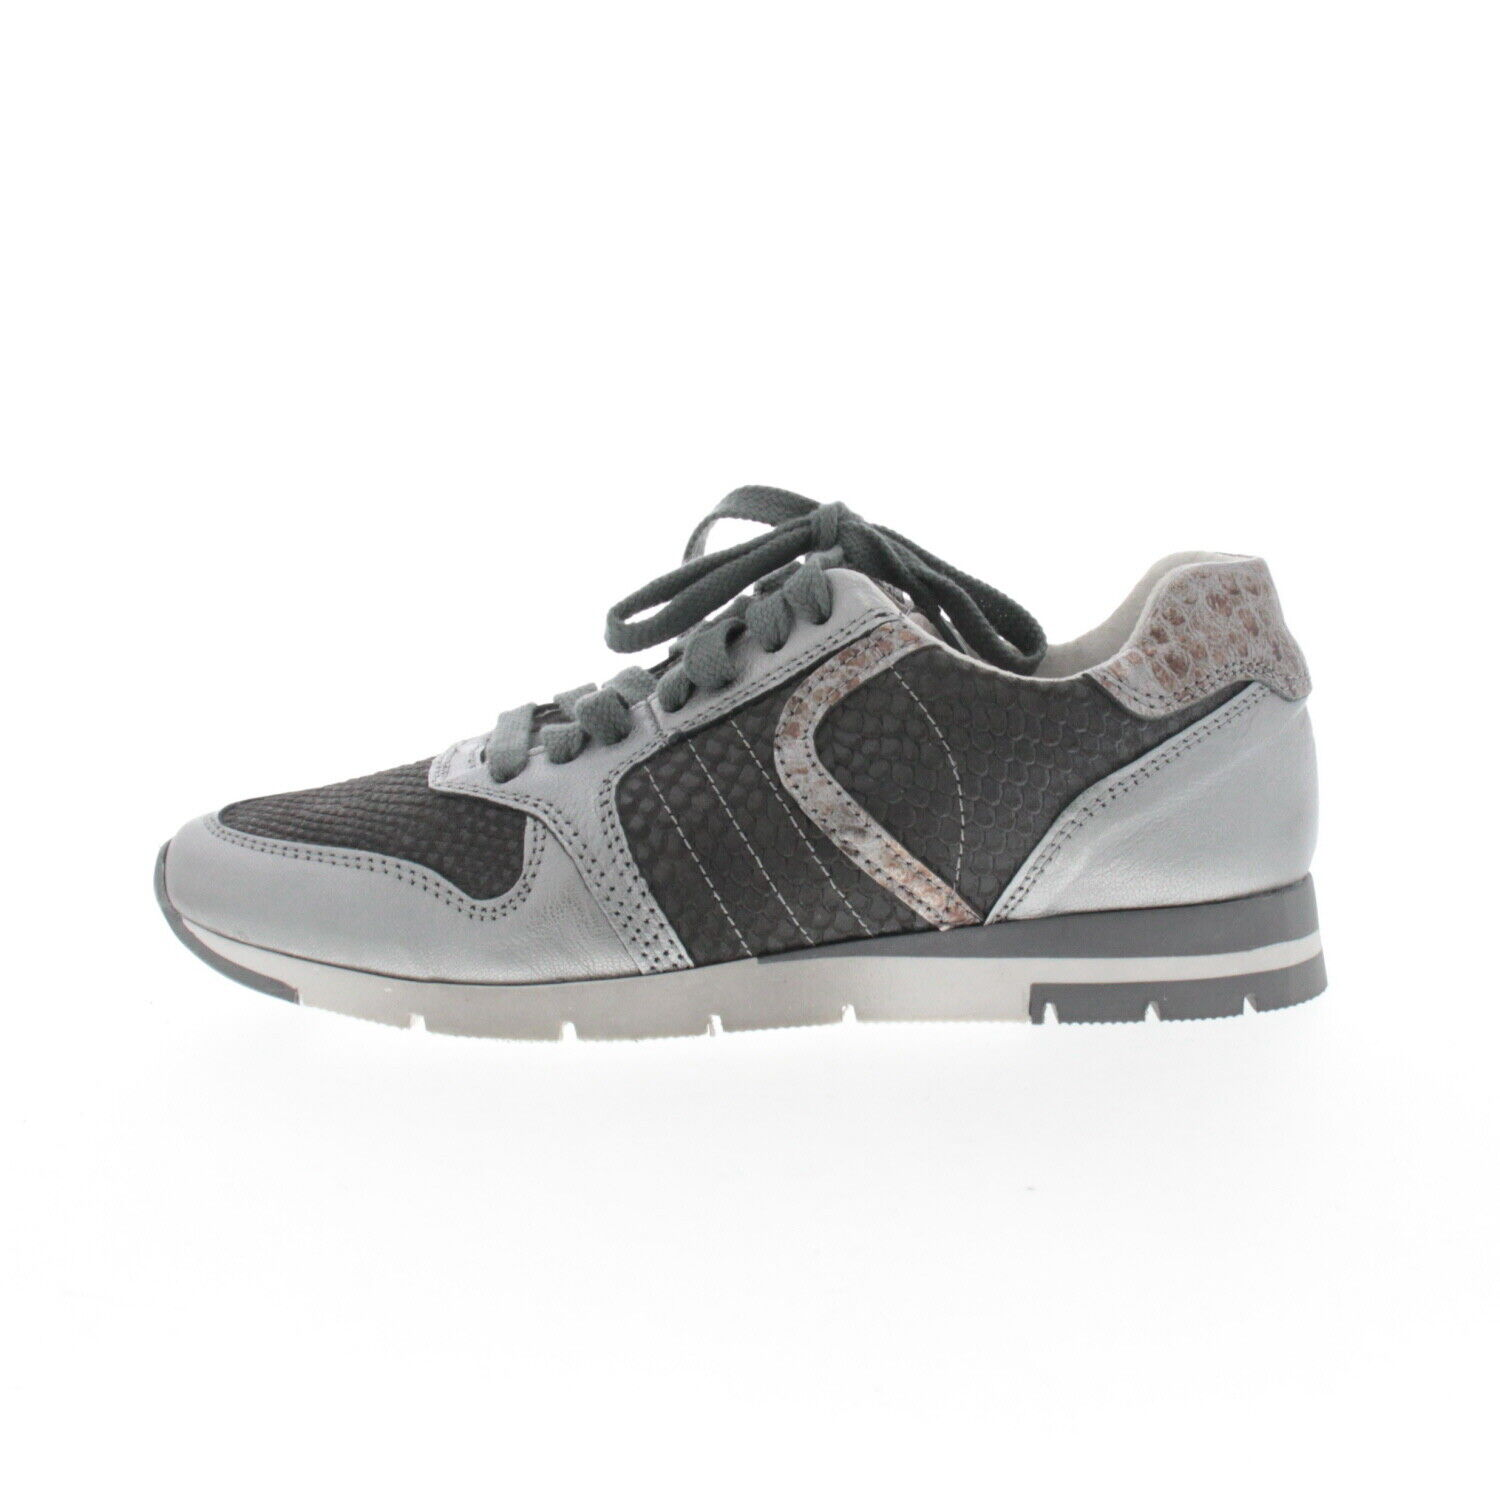 Post XChange Chaussures Femme Taille 38 Gris Baskets 155300